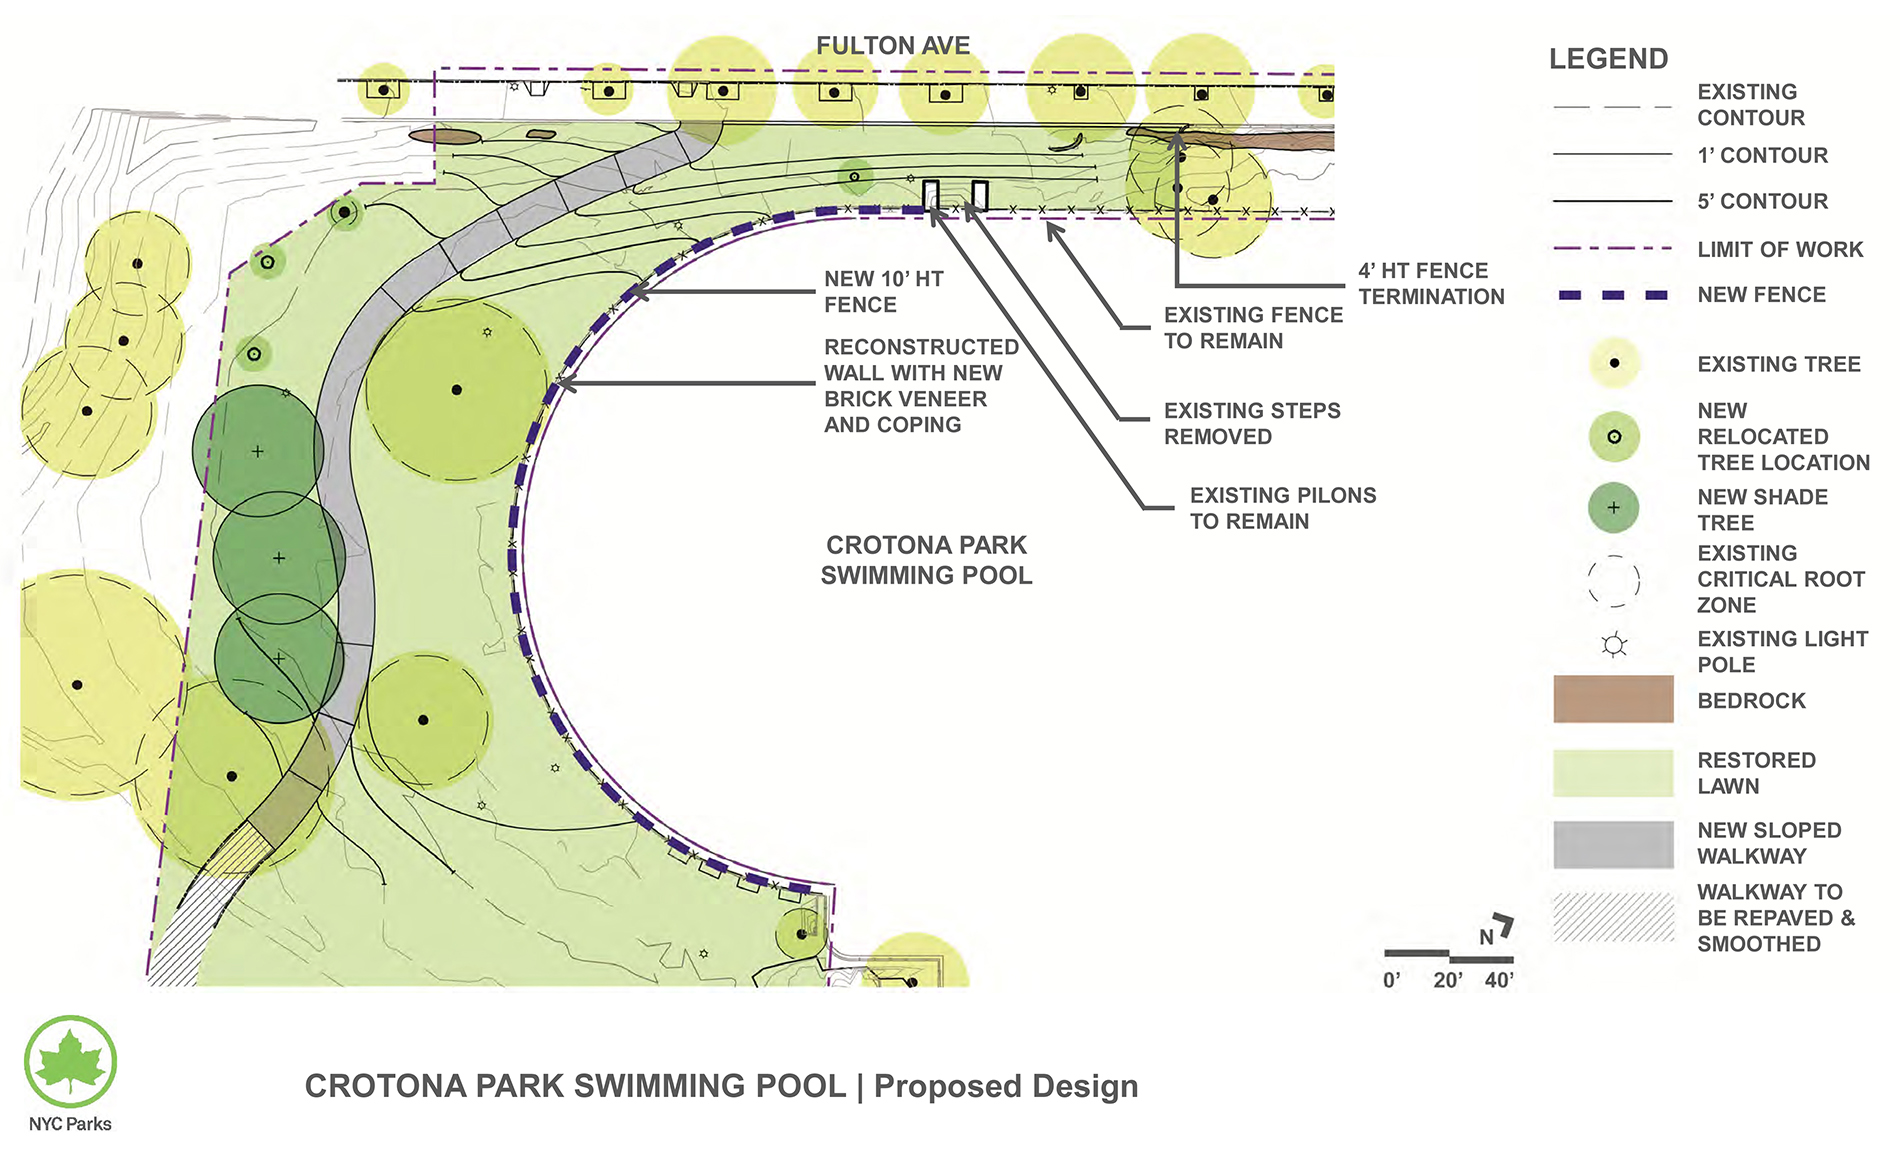 Design of Crotona Park Wall and Fence Reconstruction